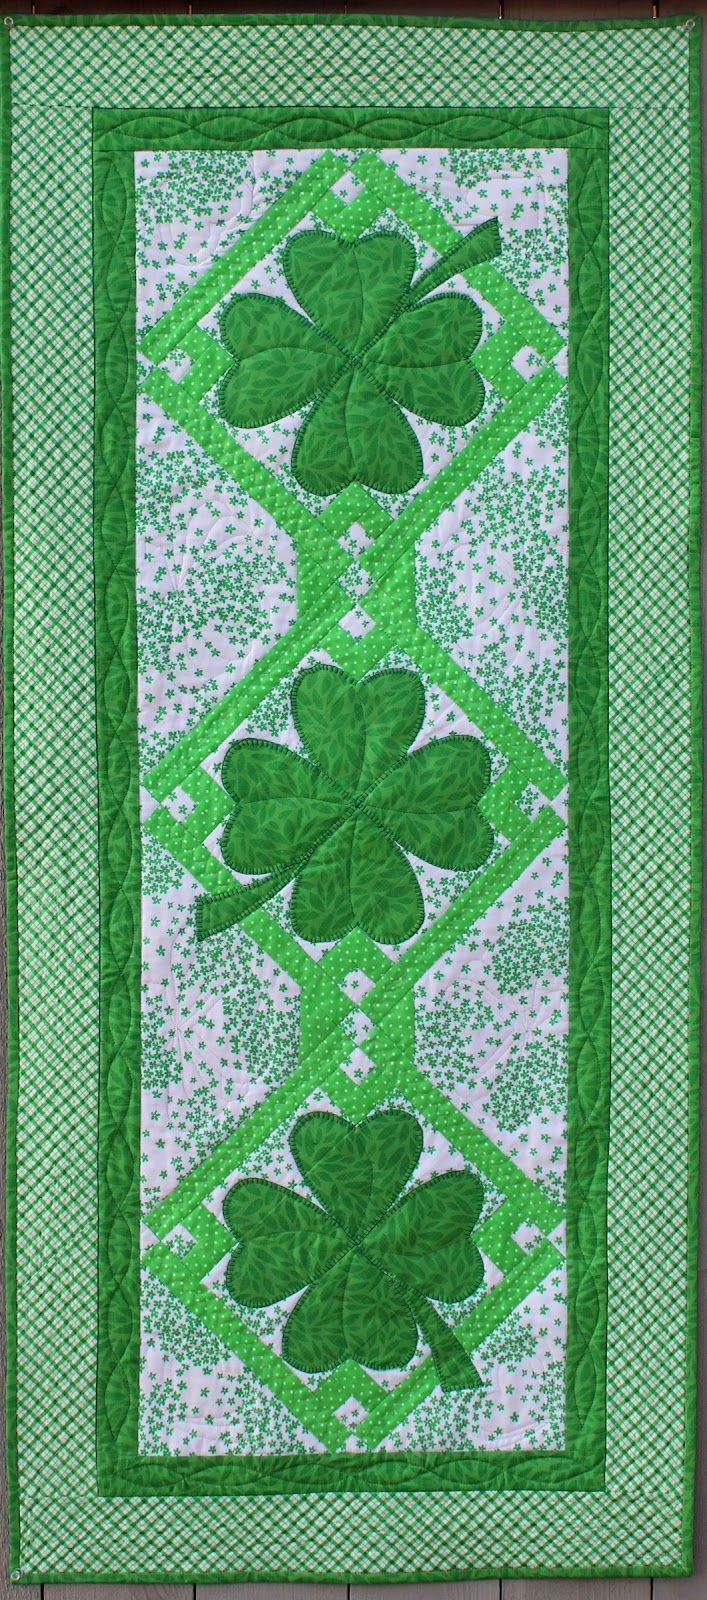 Quilt Patterns For Table Runners And Placemats : 78 best Kids - 4-H images on Pinterest 4 h, Heart hands and Project ideas